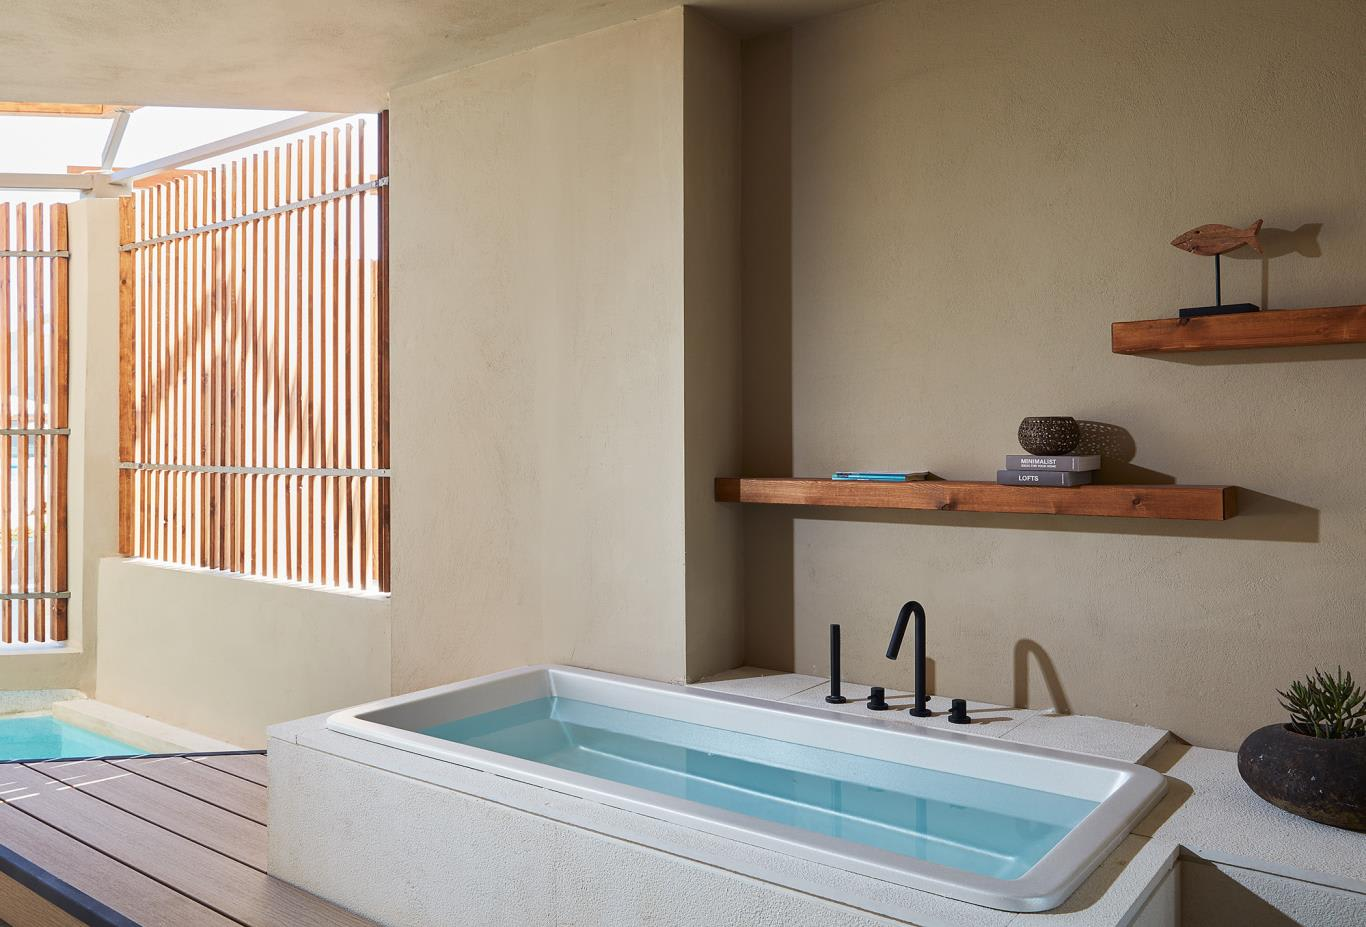 Upbeat Retreat Pool View bathtub